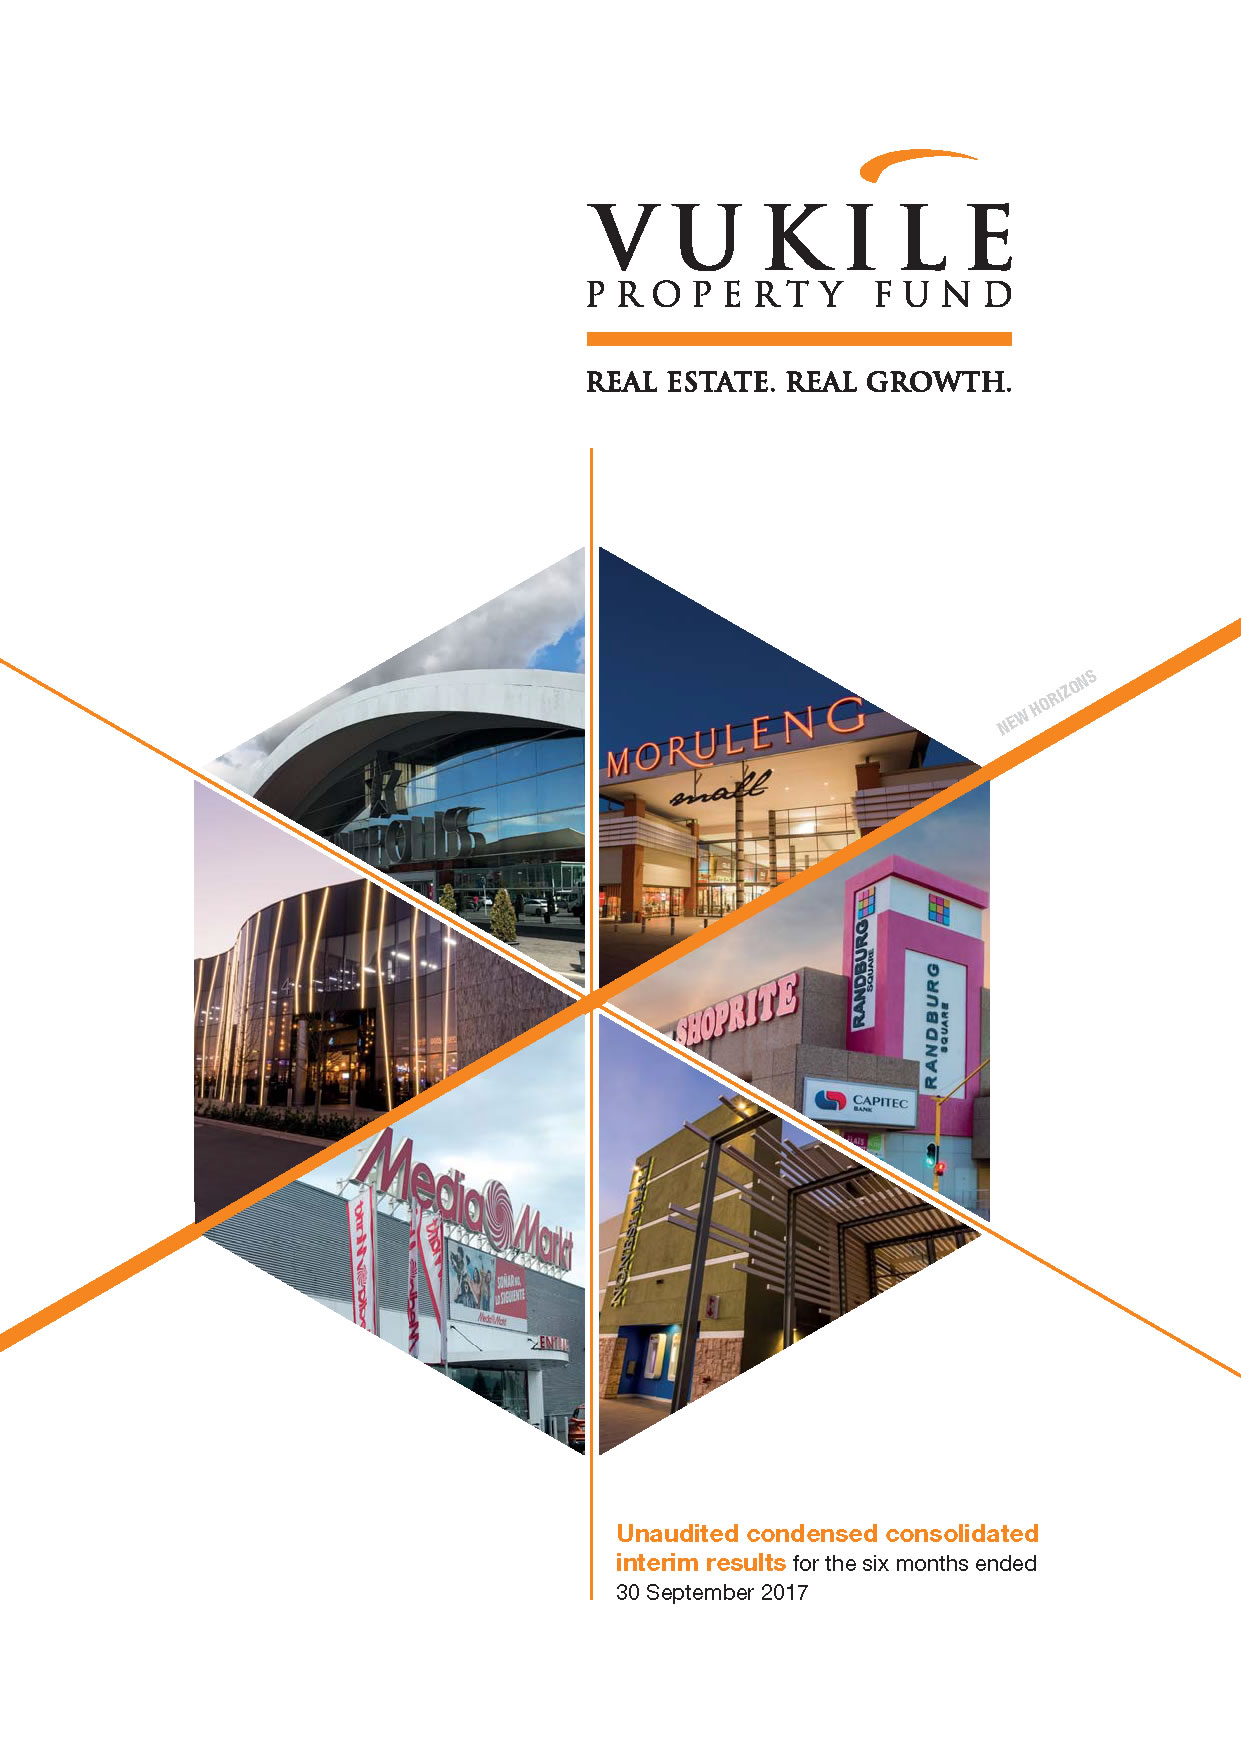 Vukile Property Fund Limited